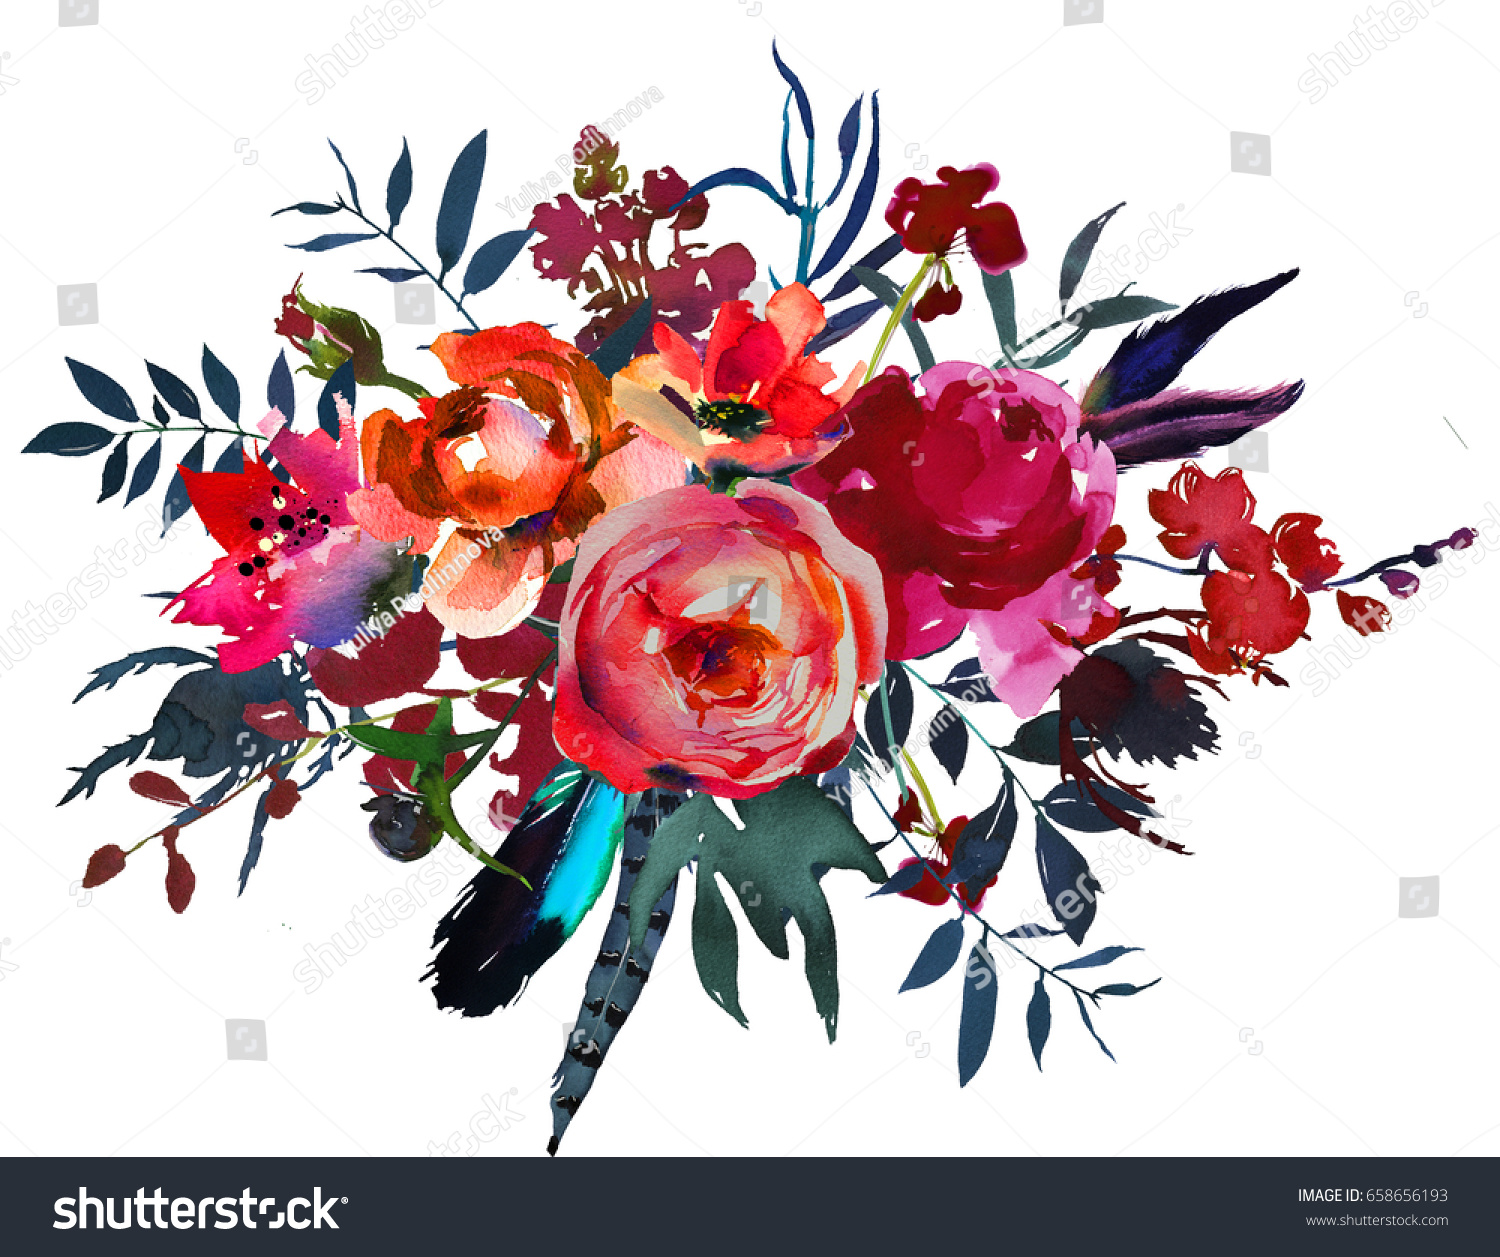 Ilustracoes Stock Imagens E Vetores De Watercolor Flowers Red Navy Blue Pink 658656193